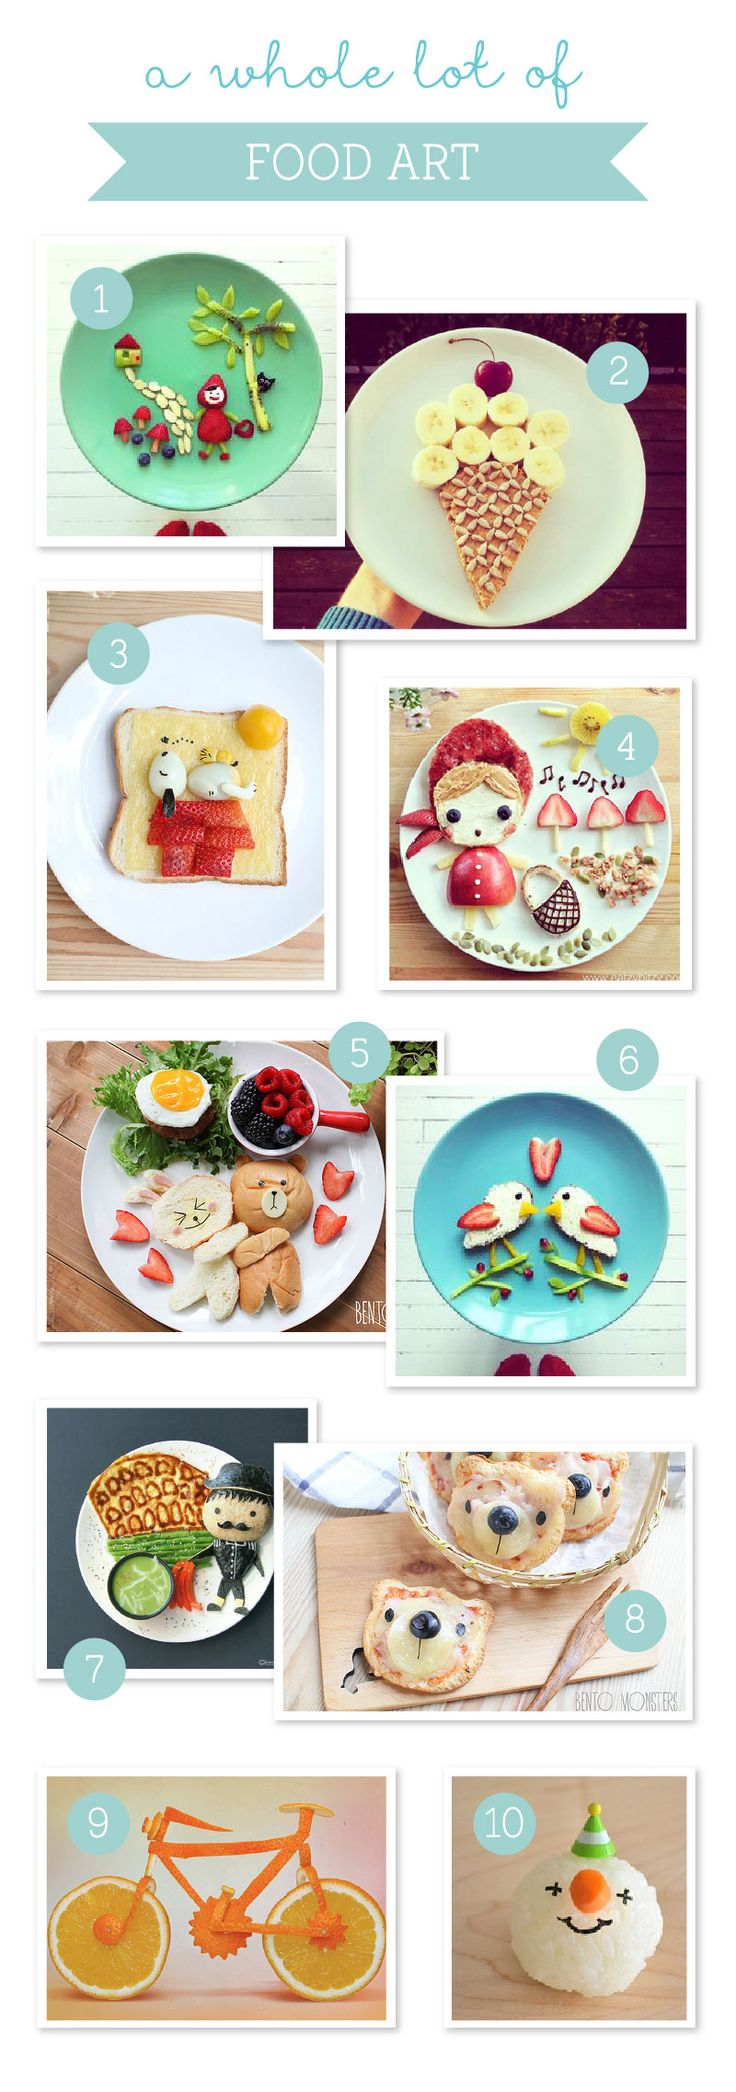 10 Amazingly Appetizing Food Art Designs ~ Tinyme